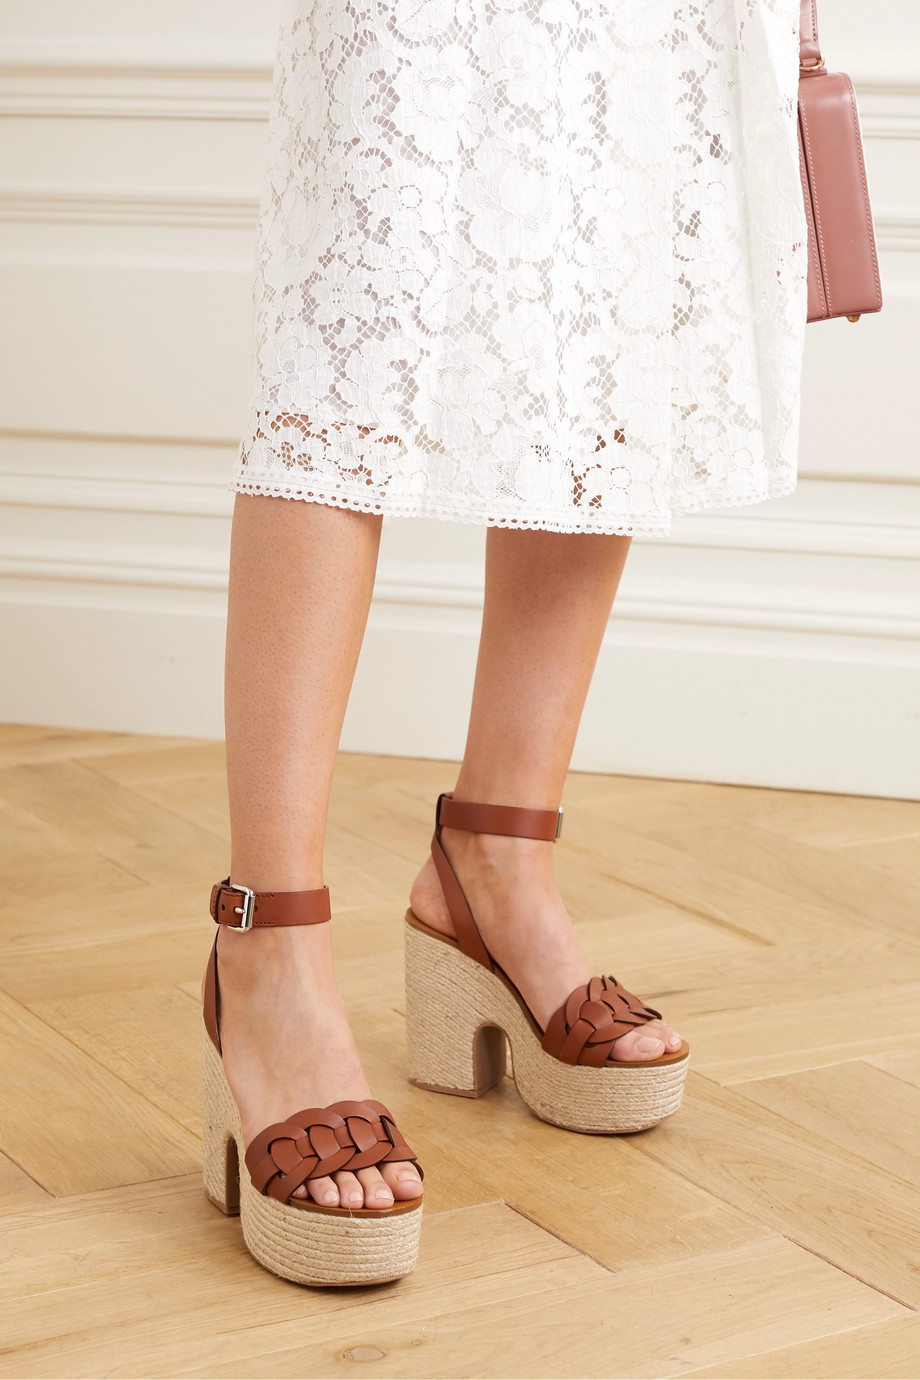 Miu Miu Woven leather espadrille wedge sandals